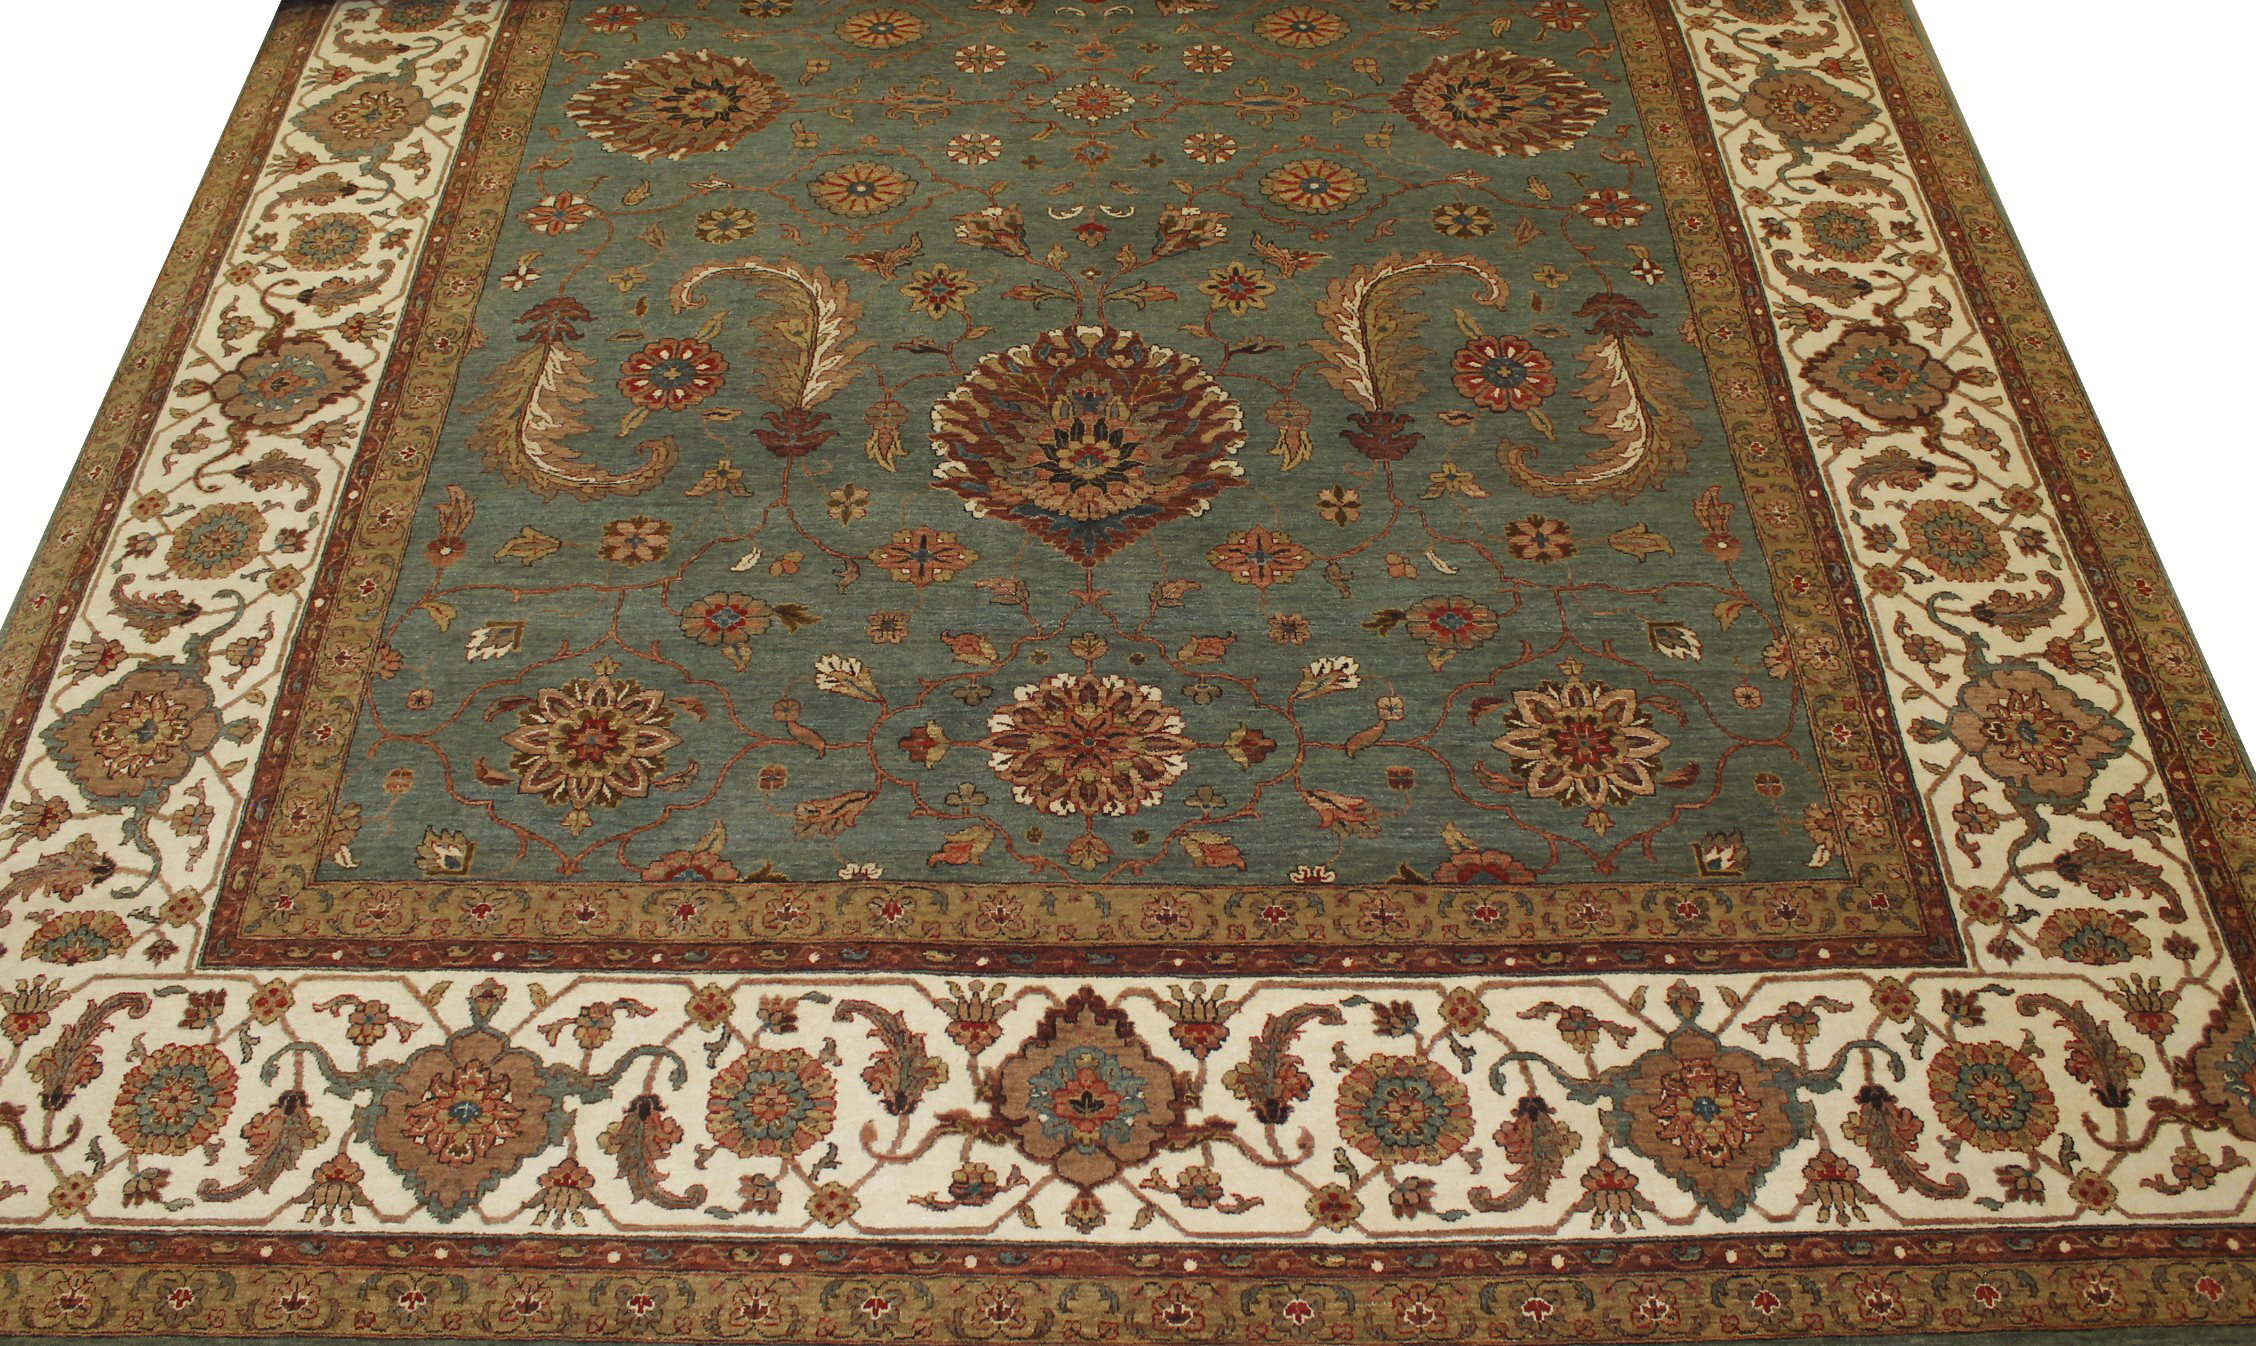 10x14 Antique Revival Hand Knotted Wool Area Rug - MR19907